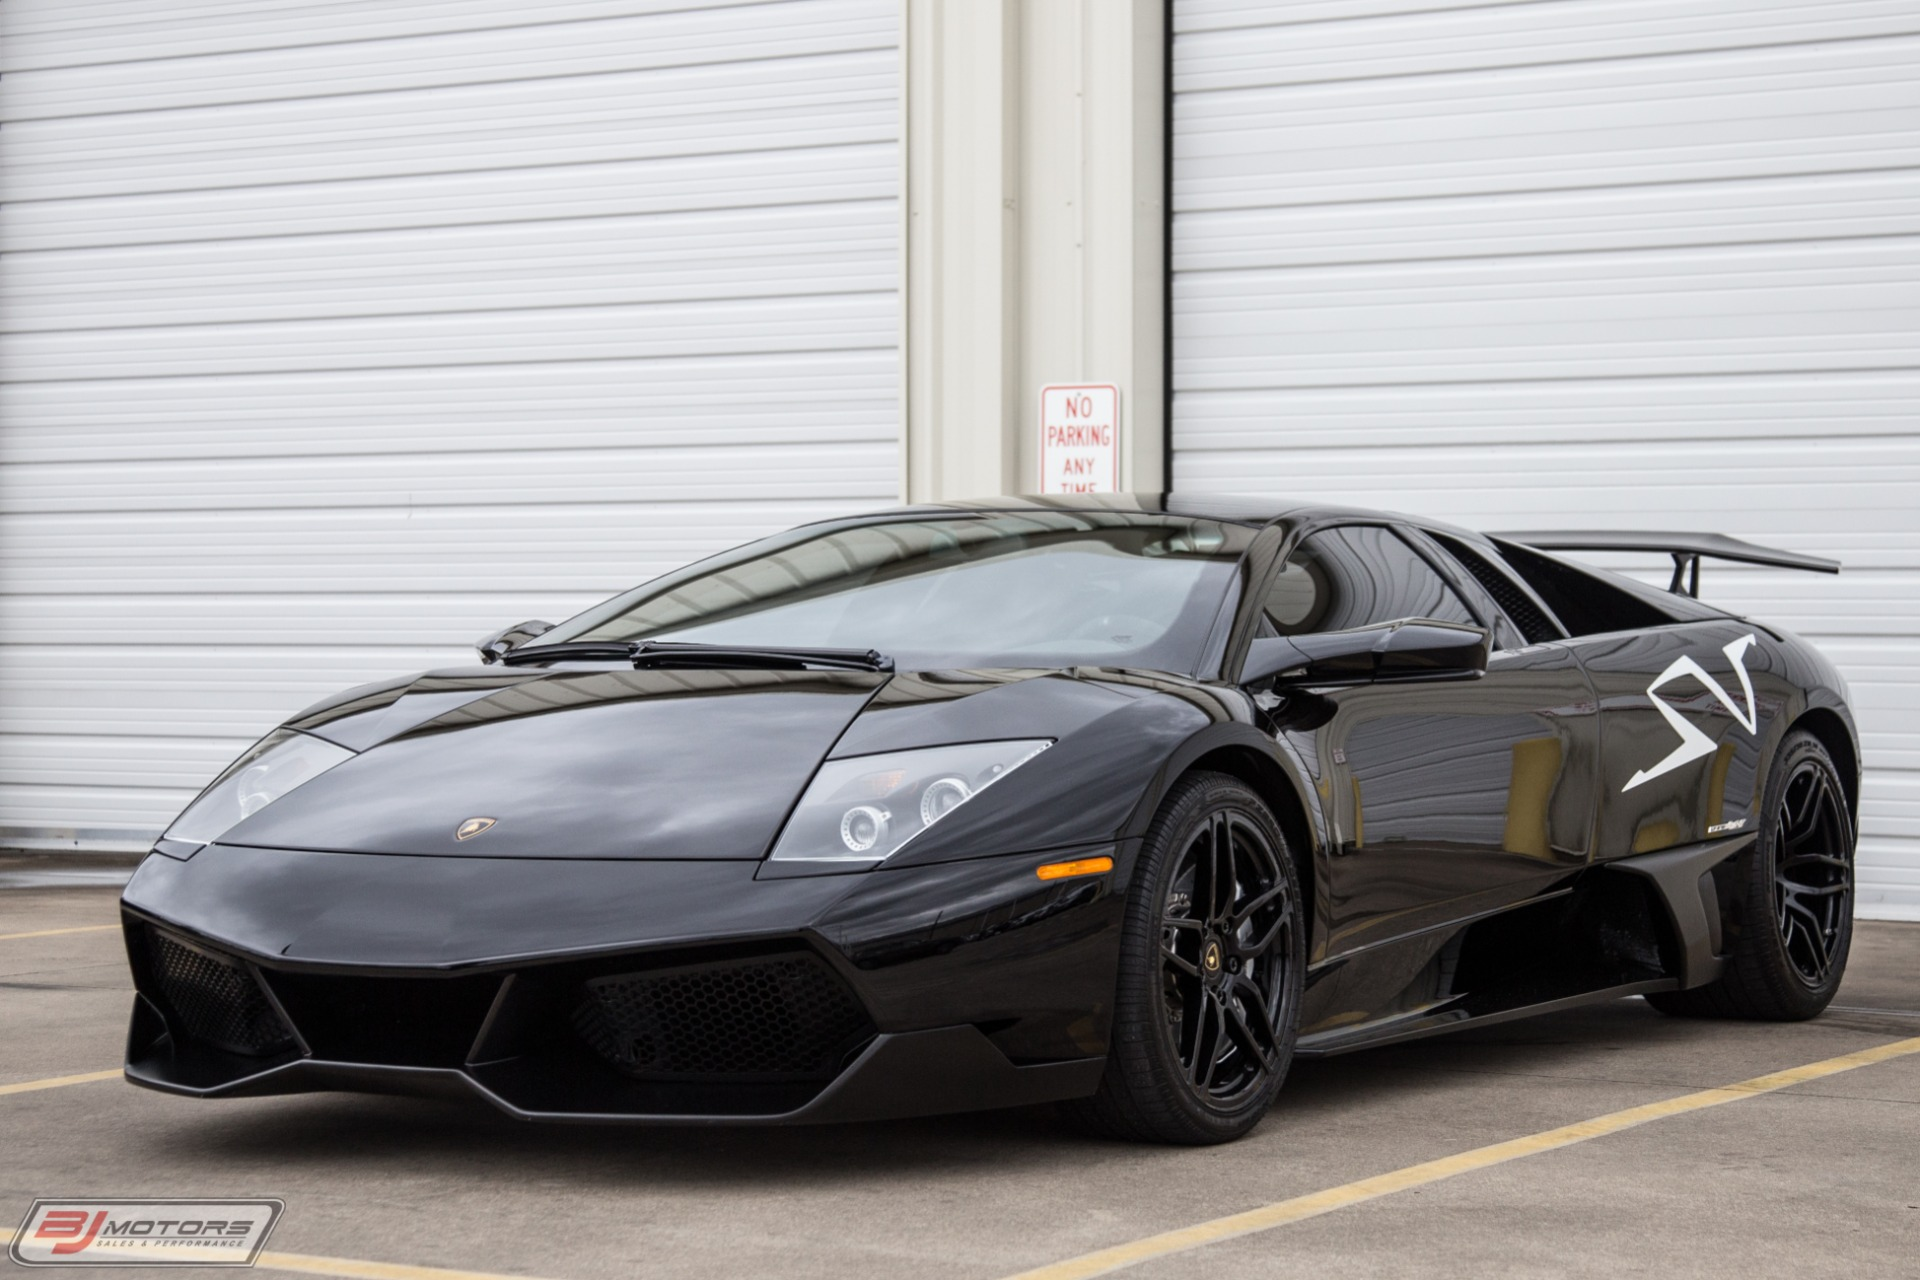 Used 2010 Lamborghini Murcielago Sv Lp670 For Sale Special